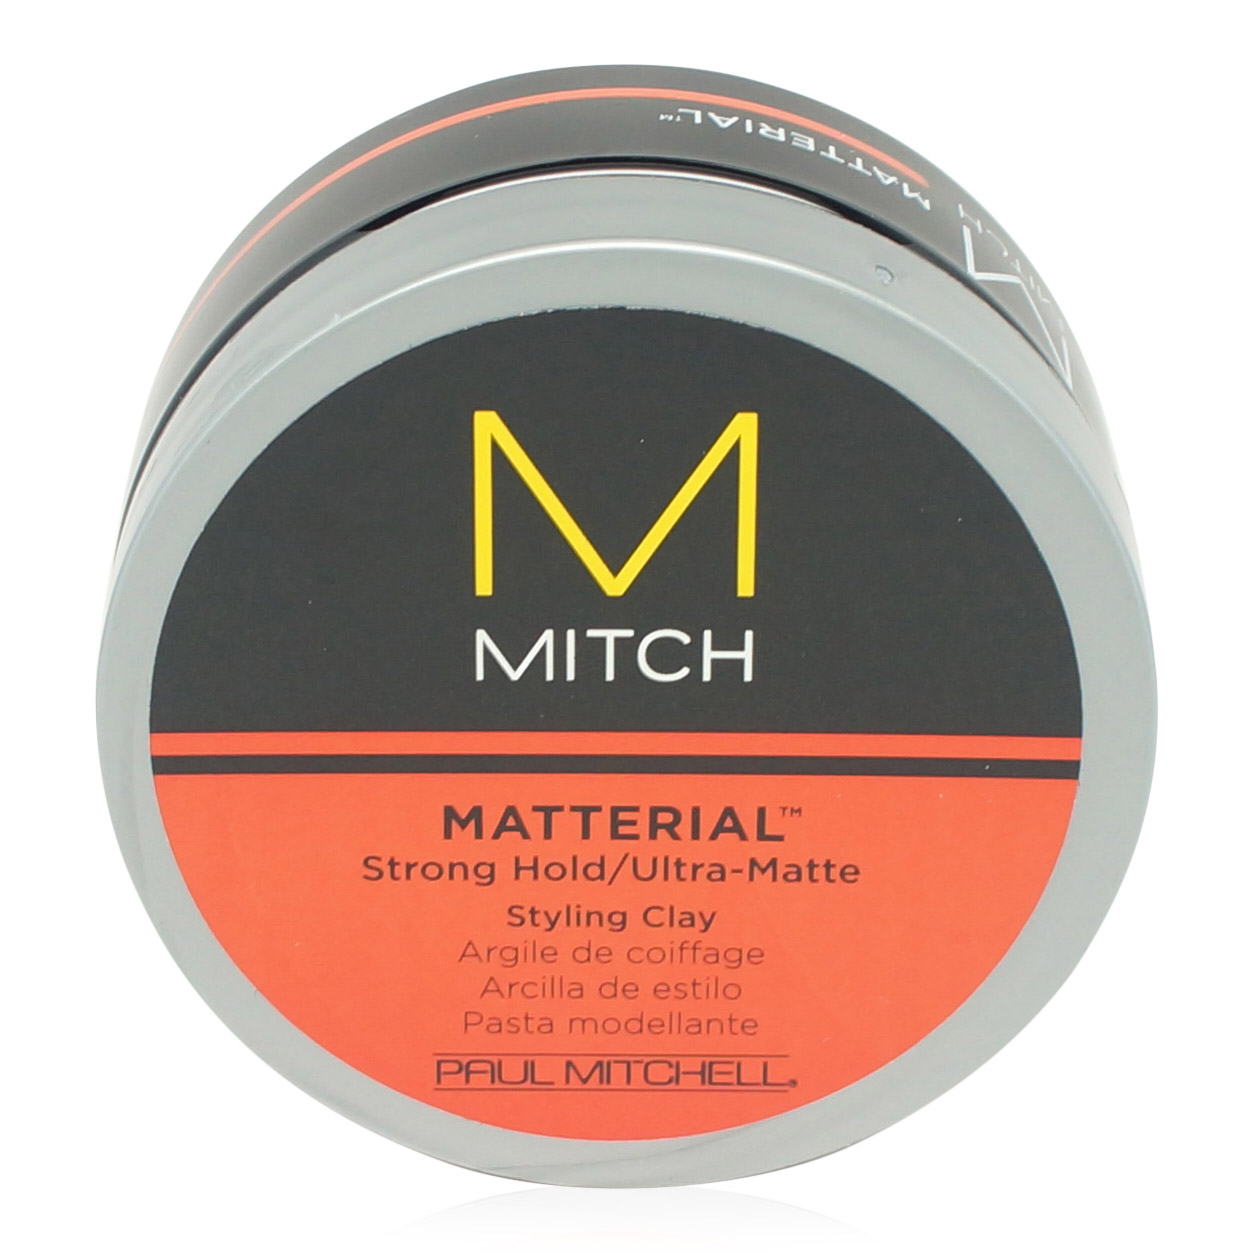 Mitch Matterial >> Paul Mitchell Paul Mitchell Mitch Matterial Strong Hold Styling